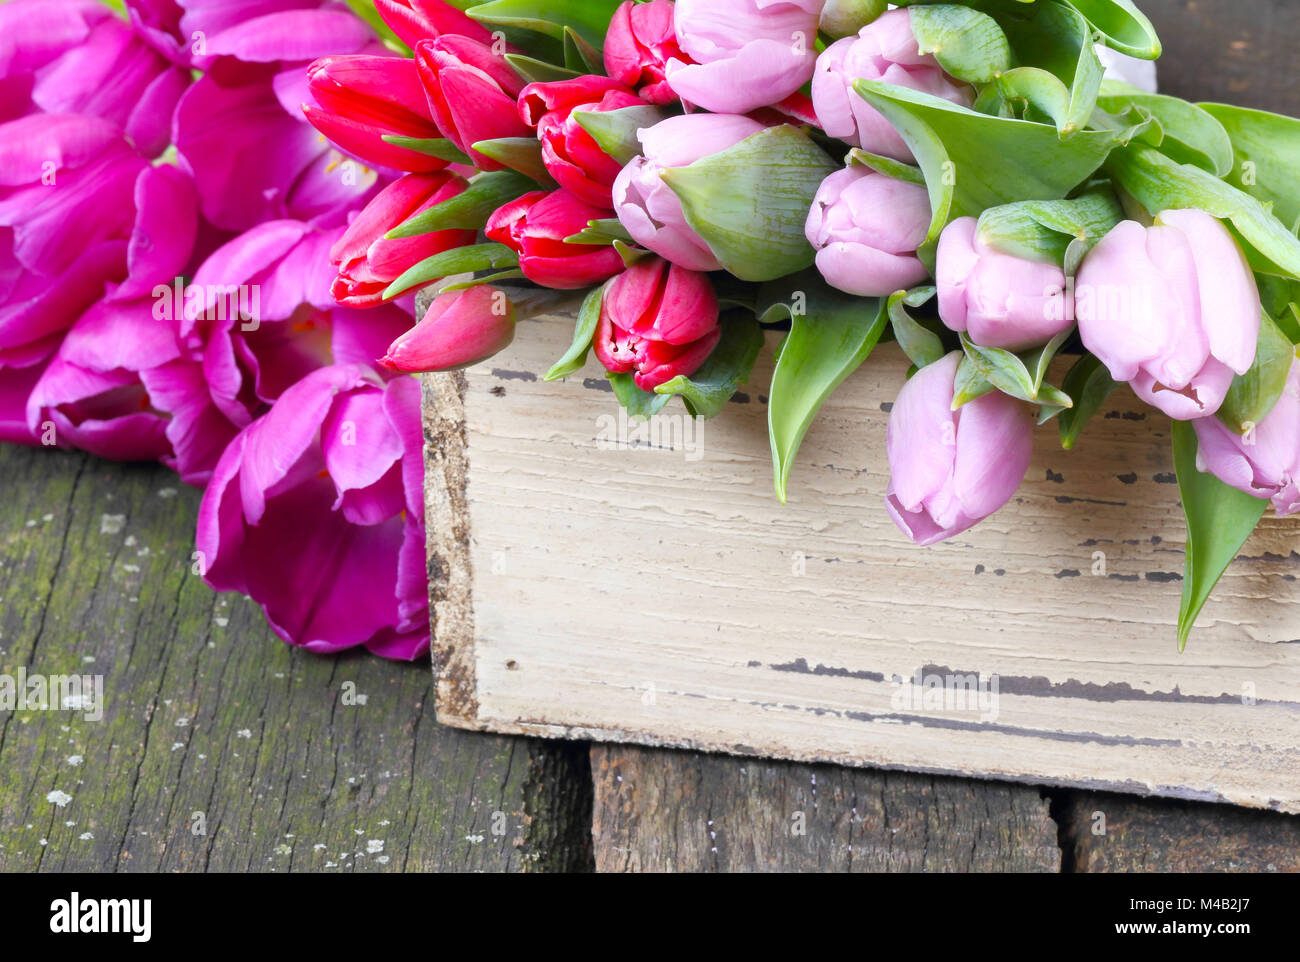 Tulips on wooden table - Stock Image